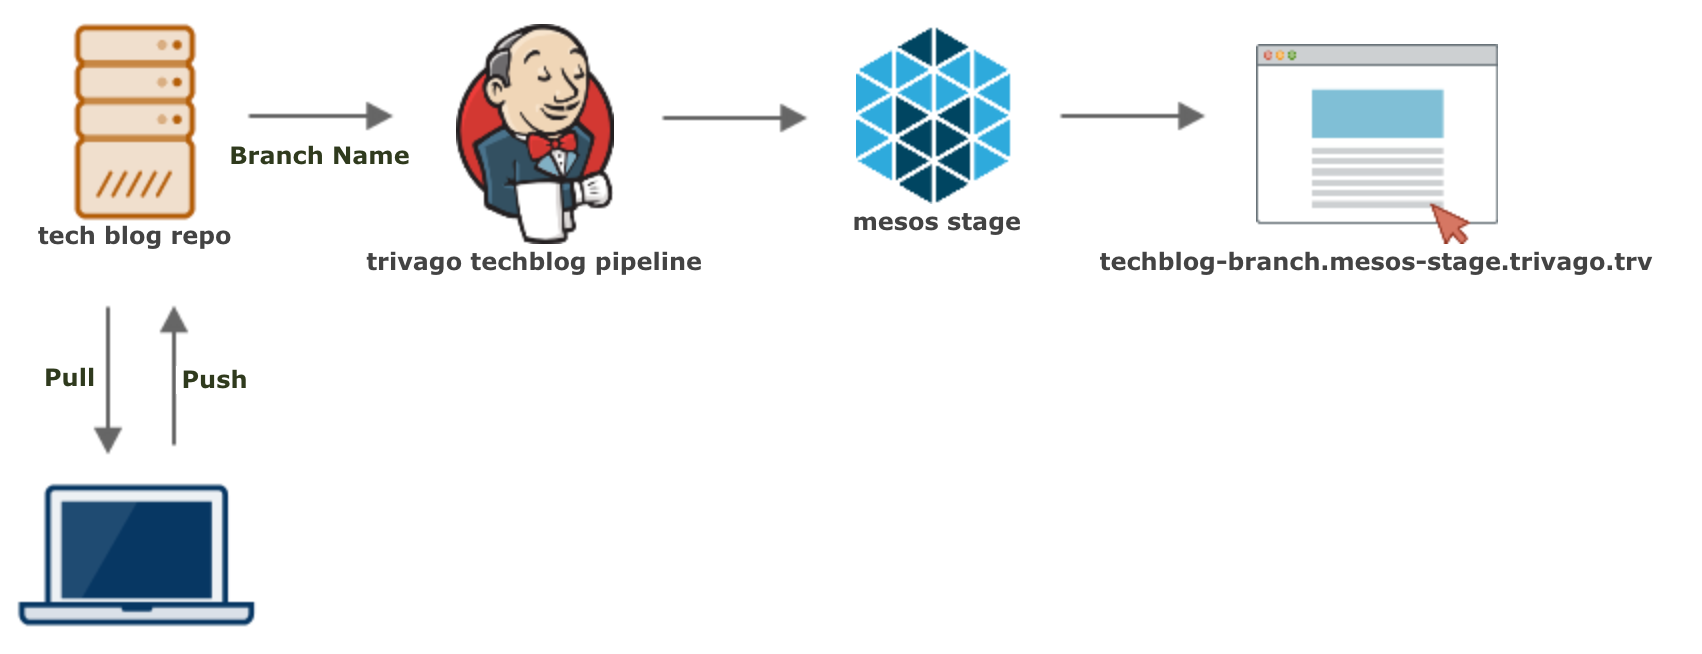 A diagram showing the state deployment pipeline. A user clones and pushes to the repo., which triggers Jenkins, which is then deployed on a Mesos staging server.